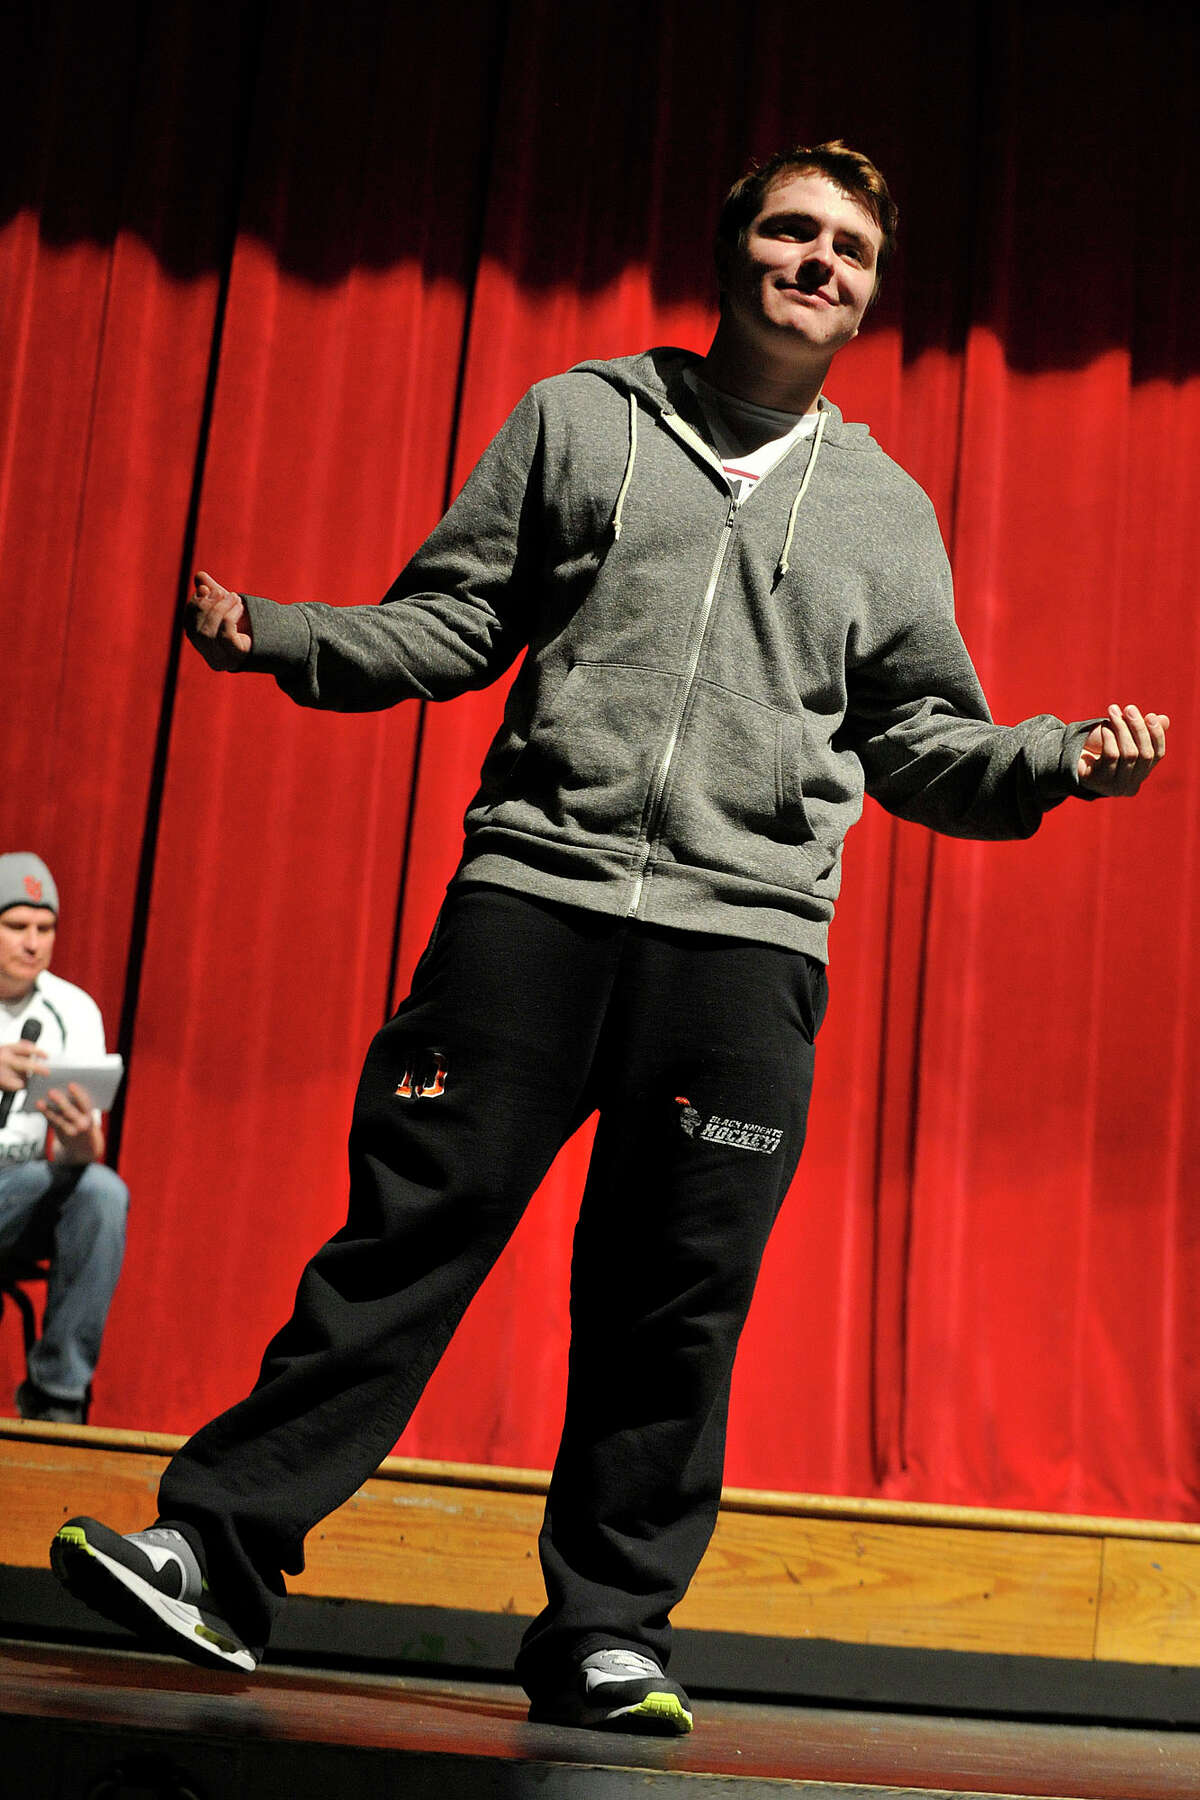 Senior Brian Powers strikes a pose during the Fashion Show fundraiser dress rehearsal at the Stamford High School auditorium in Stamford, Conn., on Tuesday, March 18, 2014. Members of the senior and junior class will show off their fashions from four local vendors on Thursday at 7 p.m. at the high school. Half of the proceeds will benefit the senior class prom after-party, which is June 6, and the other half of the proceeds go towards next year's after-prom party.